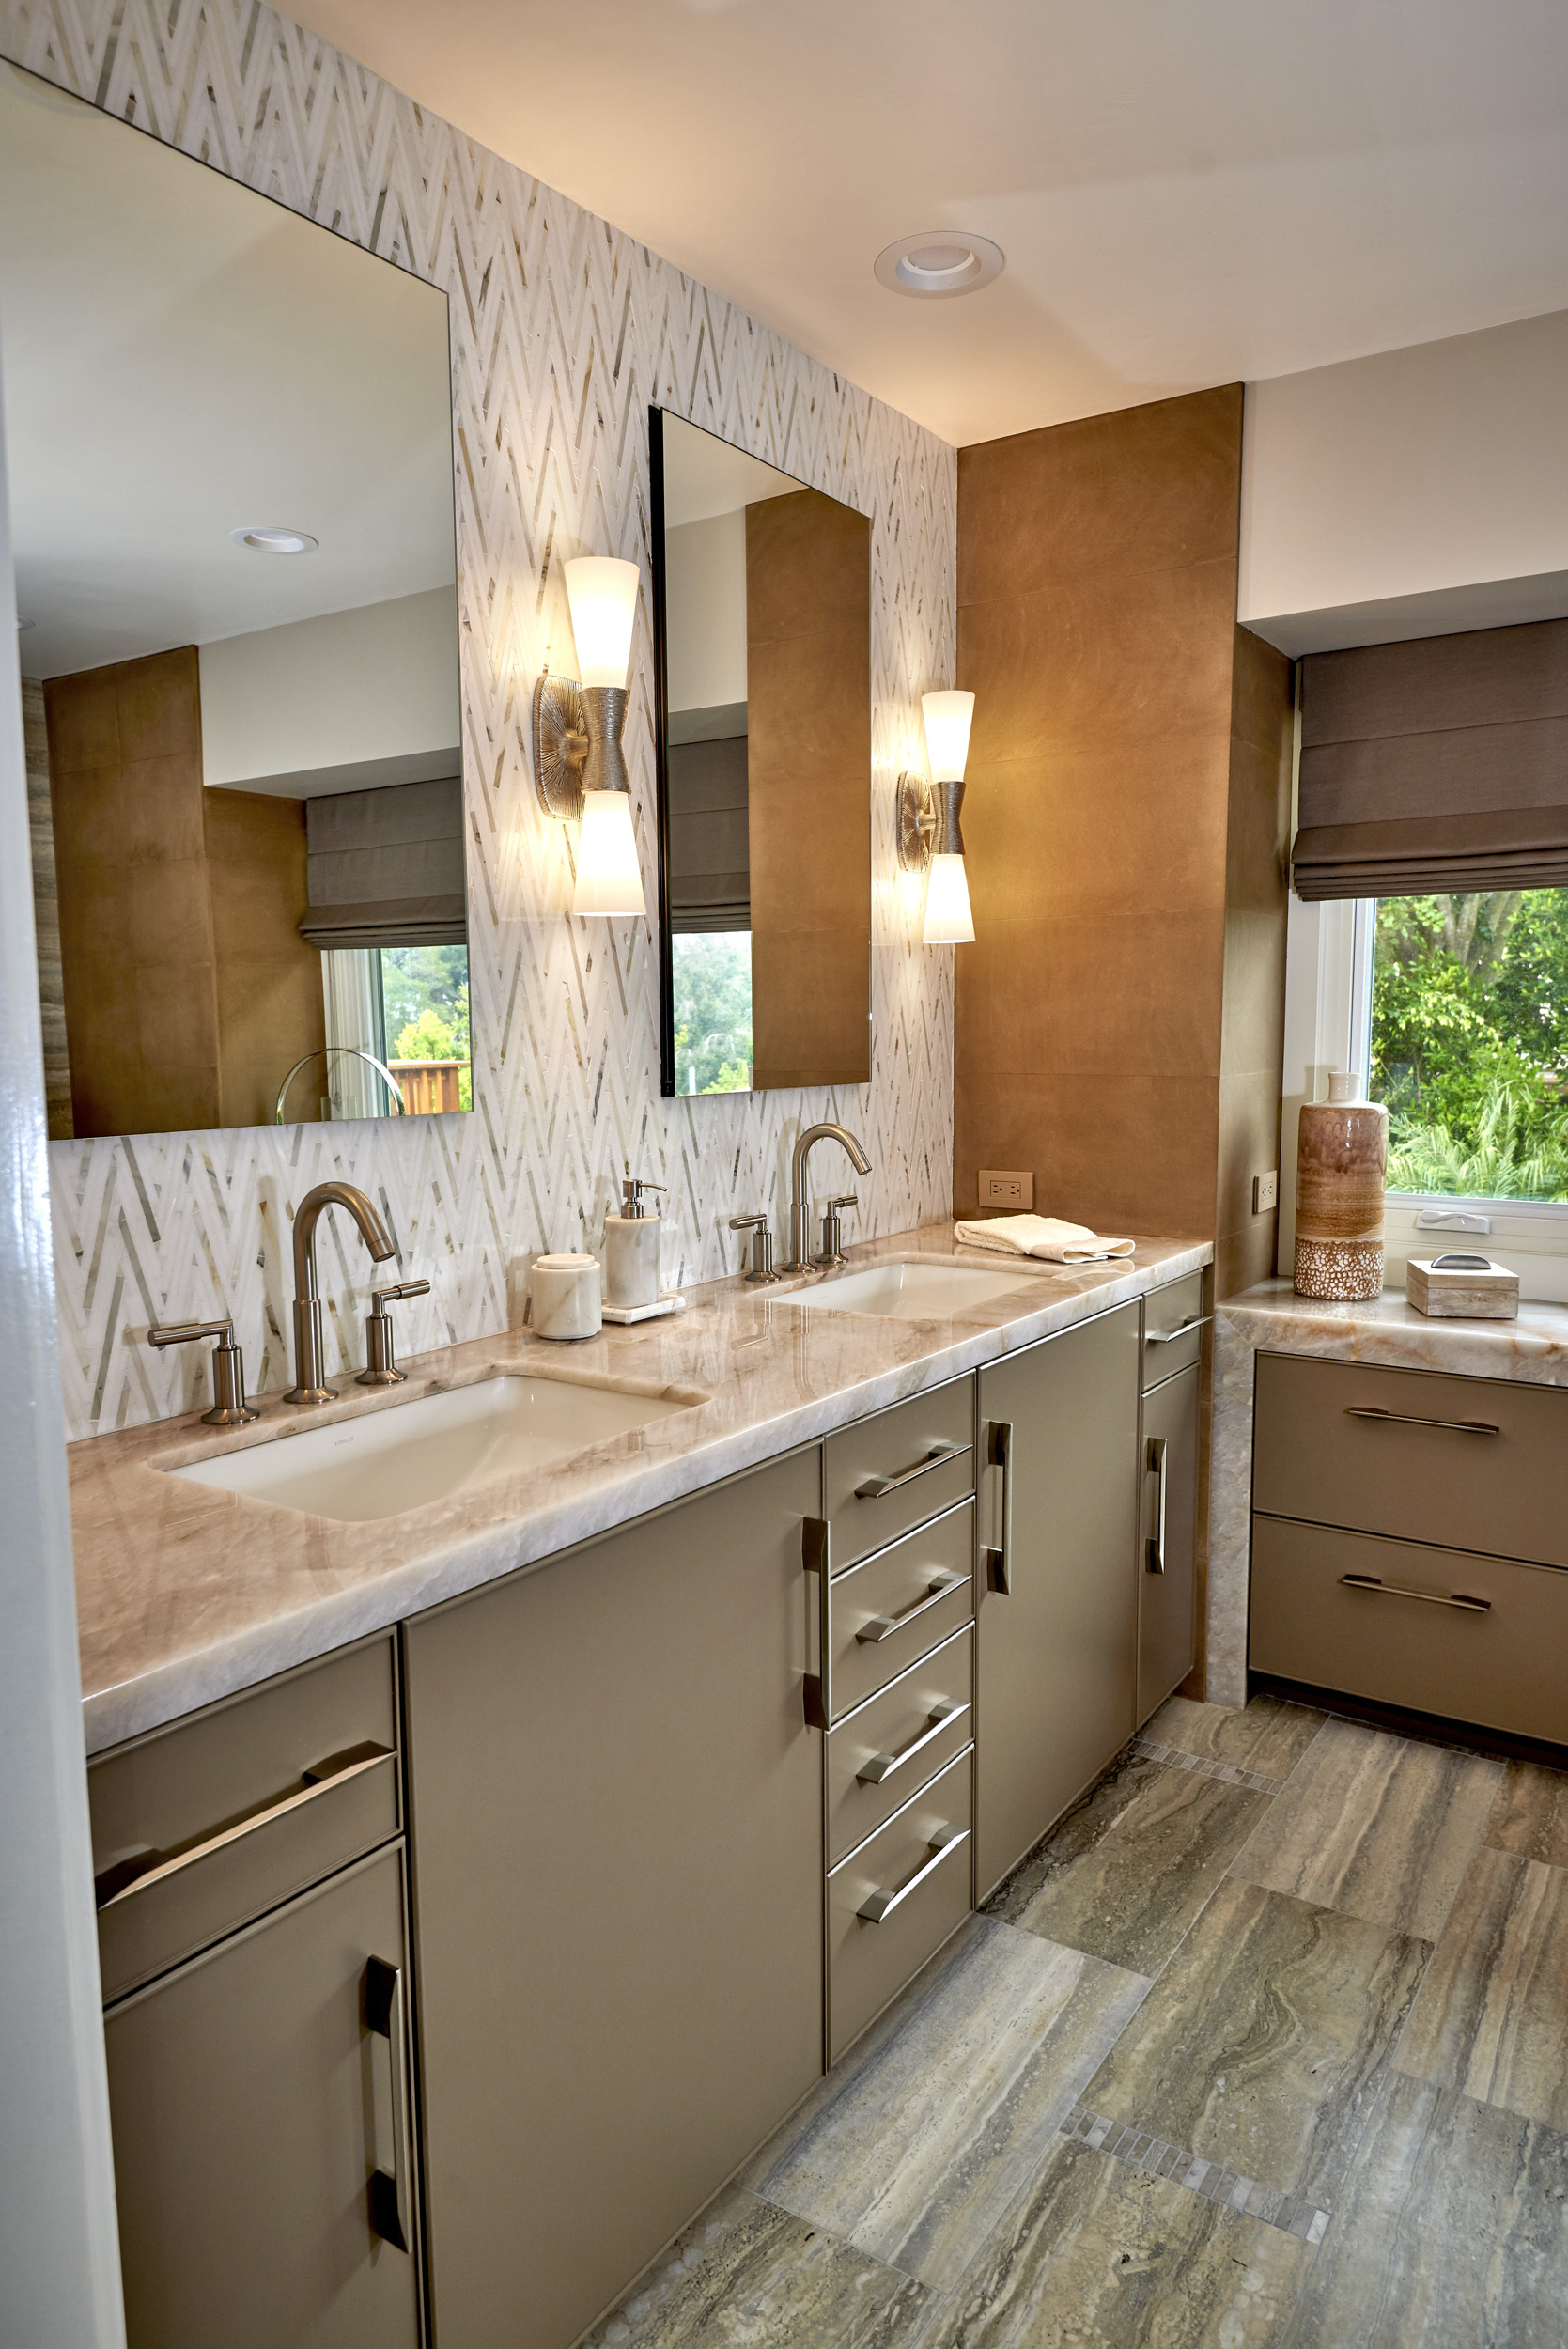 Signature Designs Kitchen Bath - LaJolla Bathroom Remodel